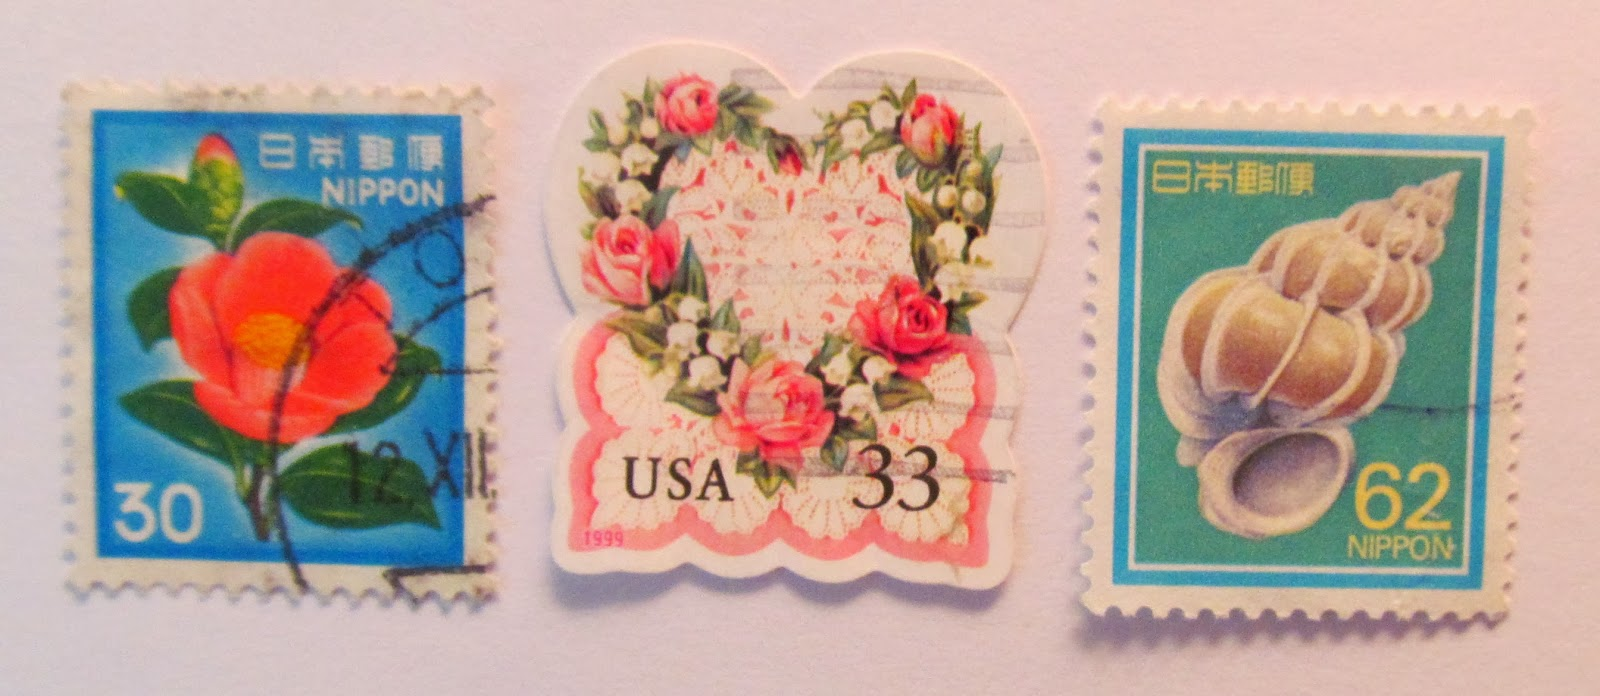 Pretty postage stamps for use in crafting